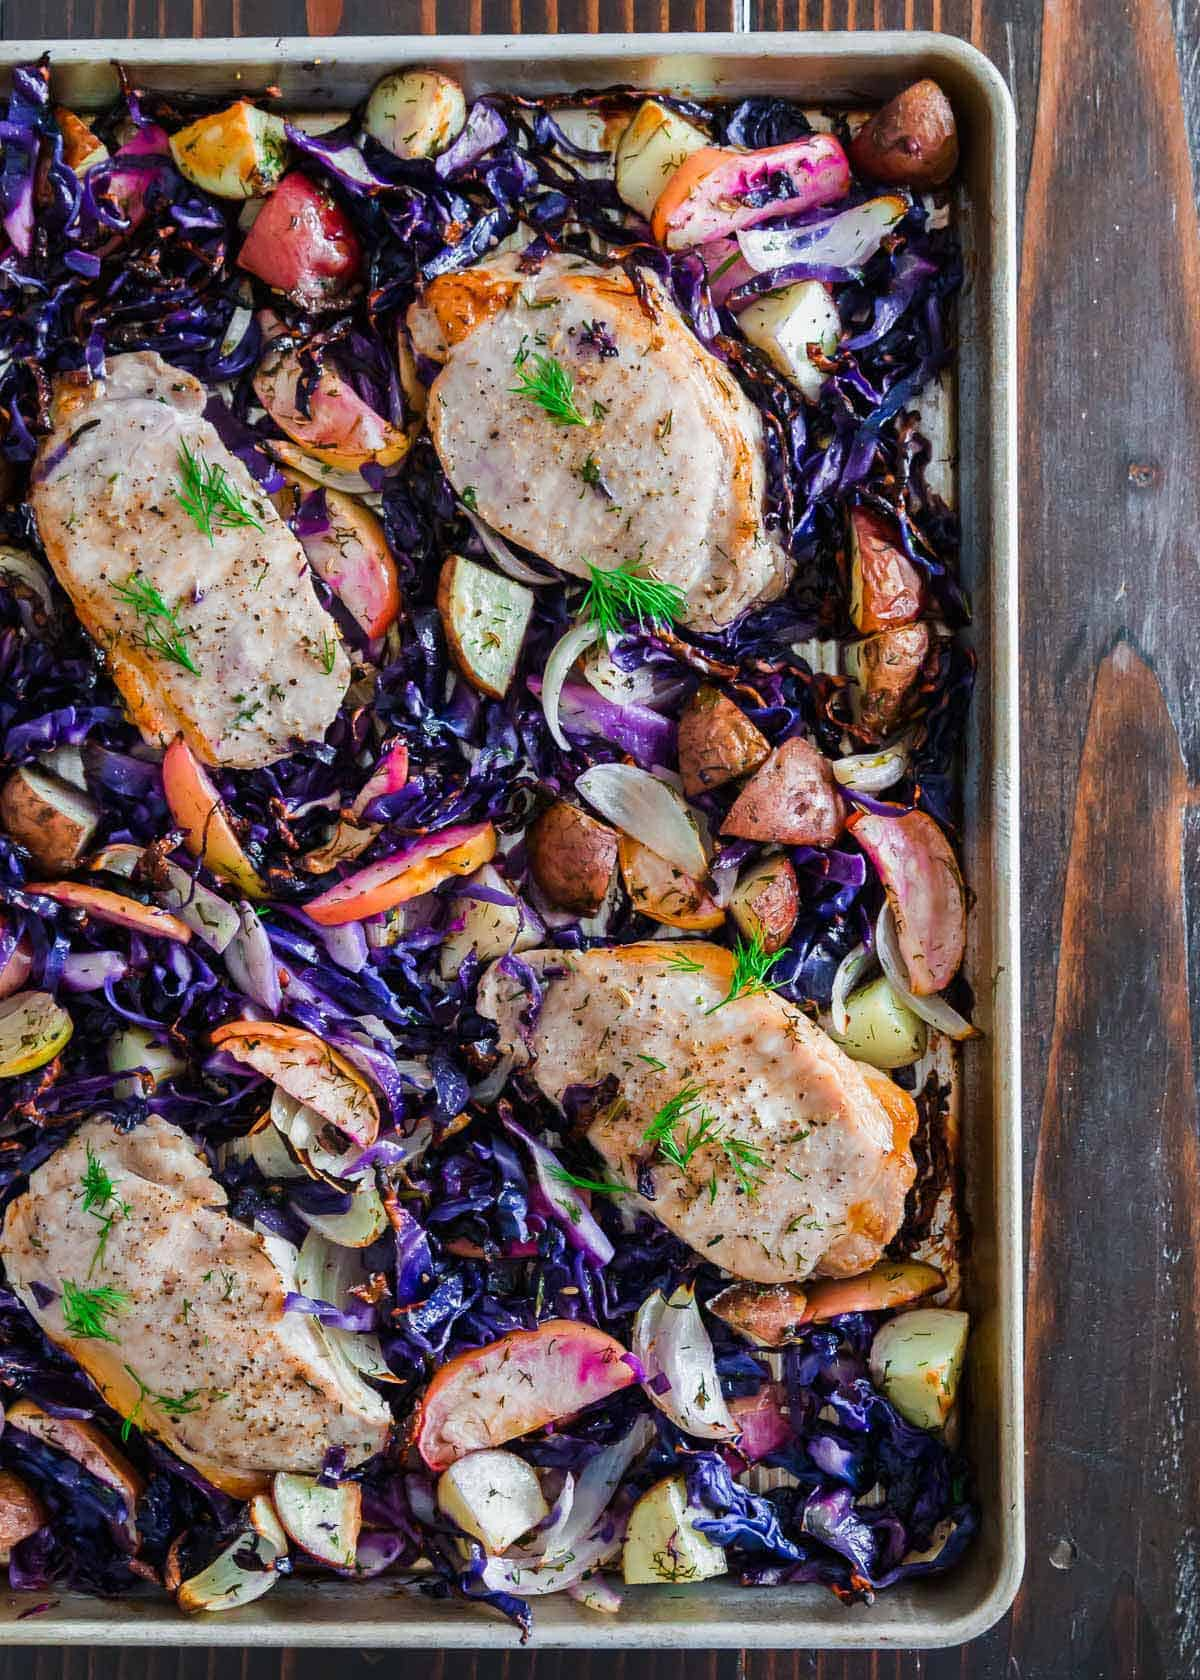 Roasted to perfection, these boneless pork chops with apples, potatoes and cabbage make a quick and easy weeknight sheet pan meal.